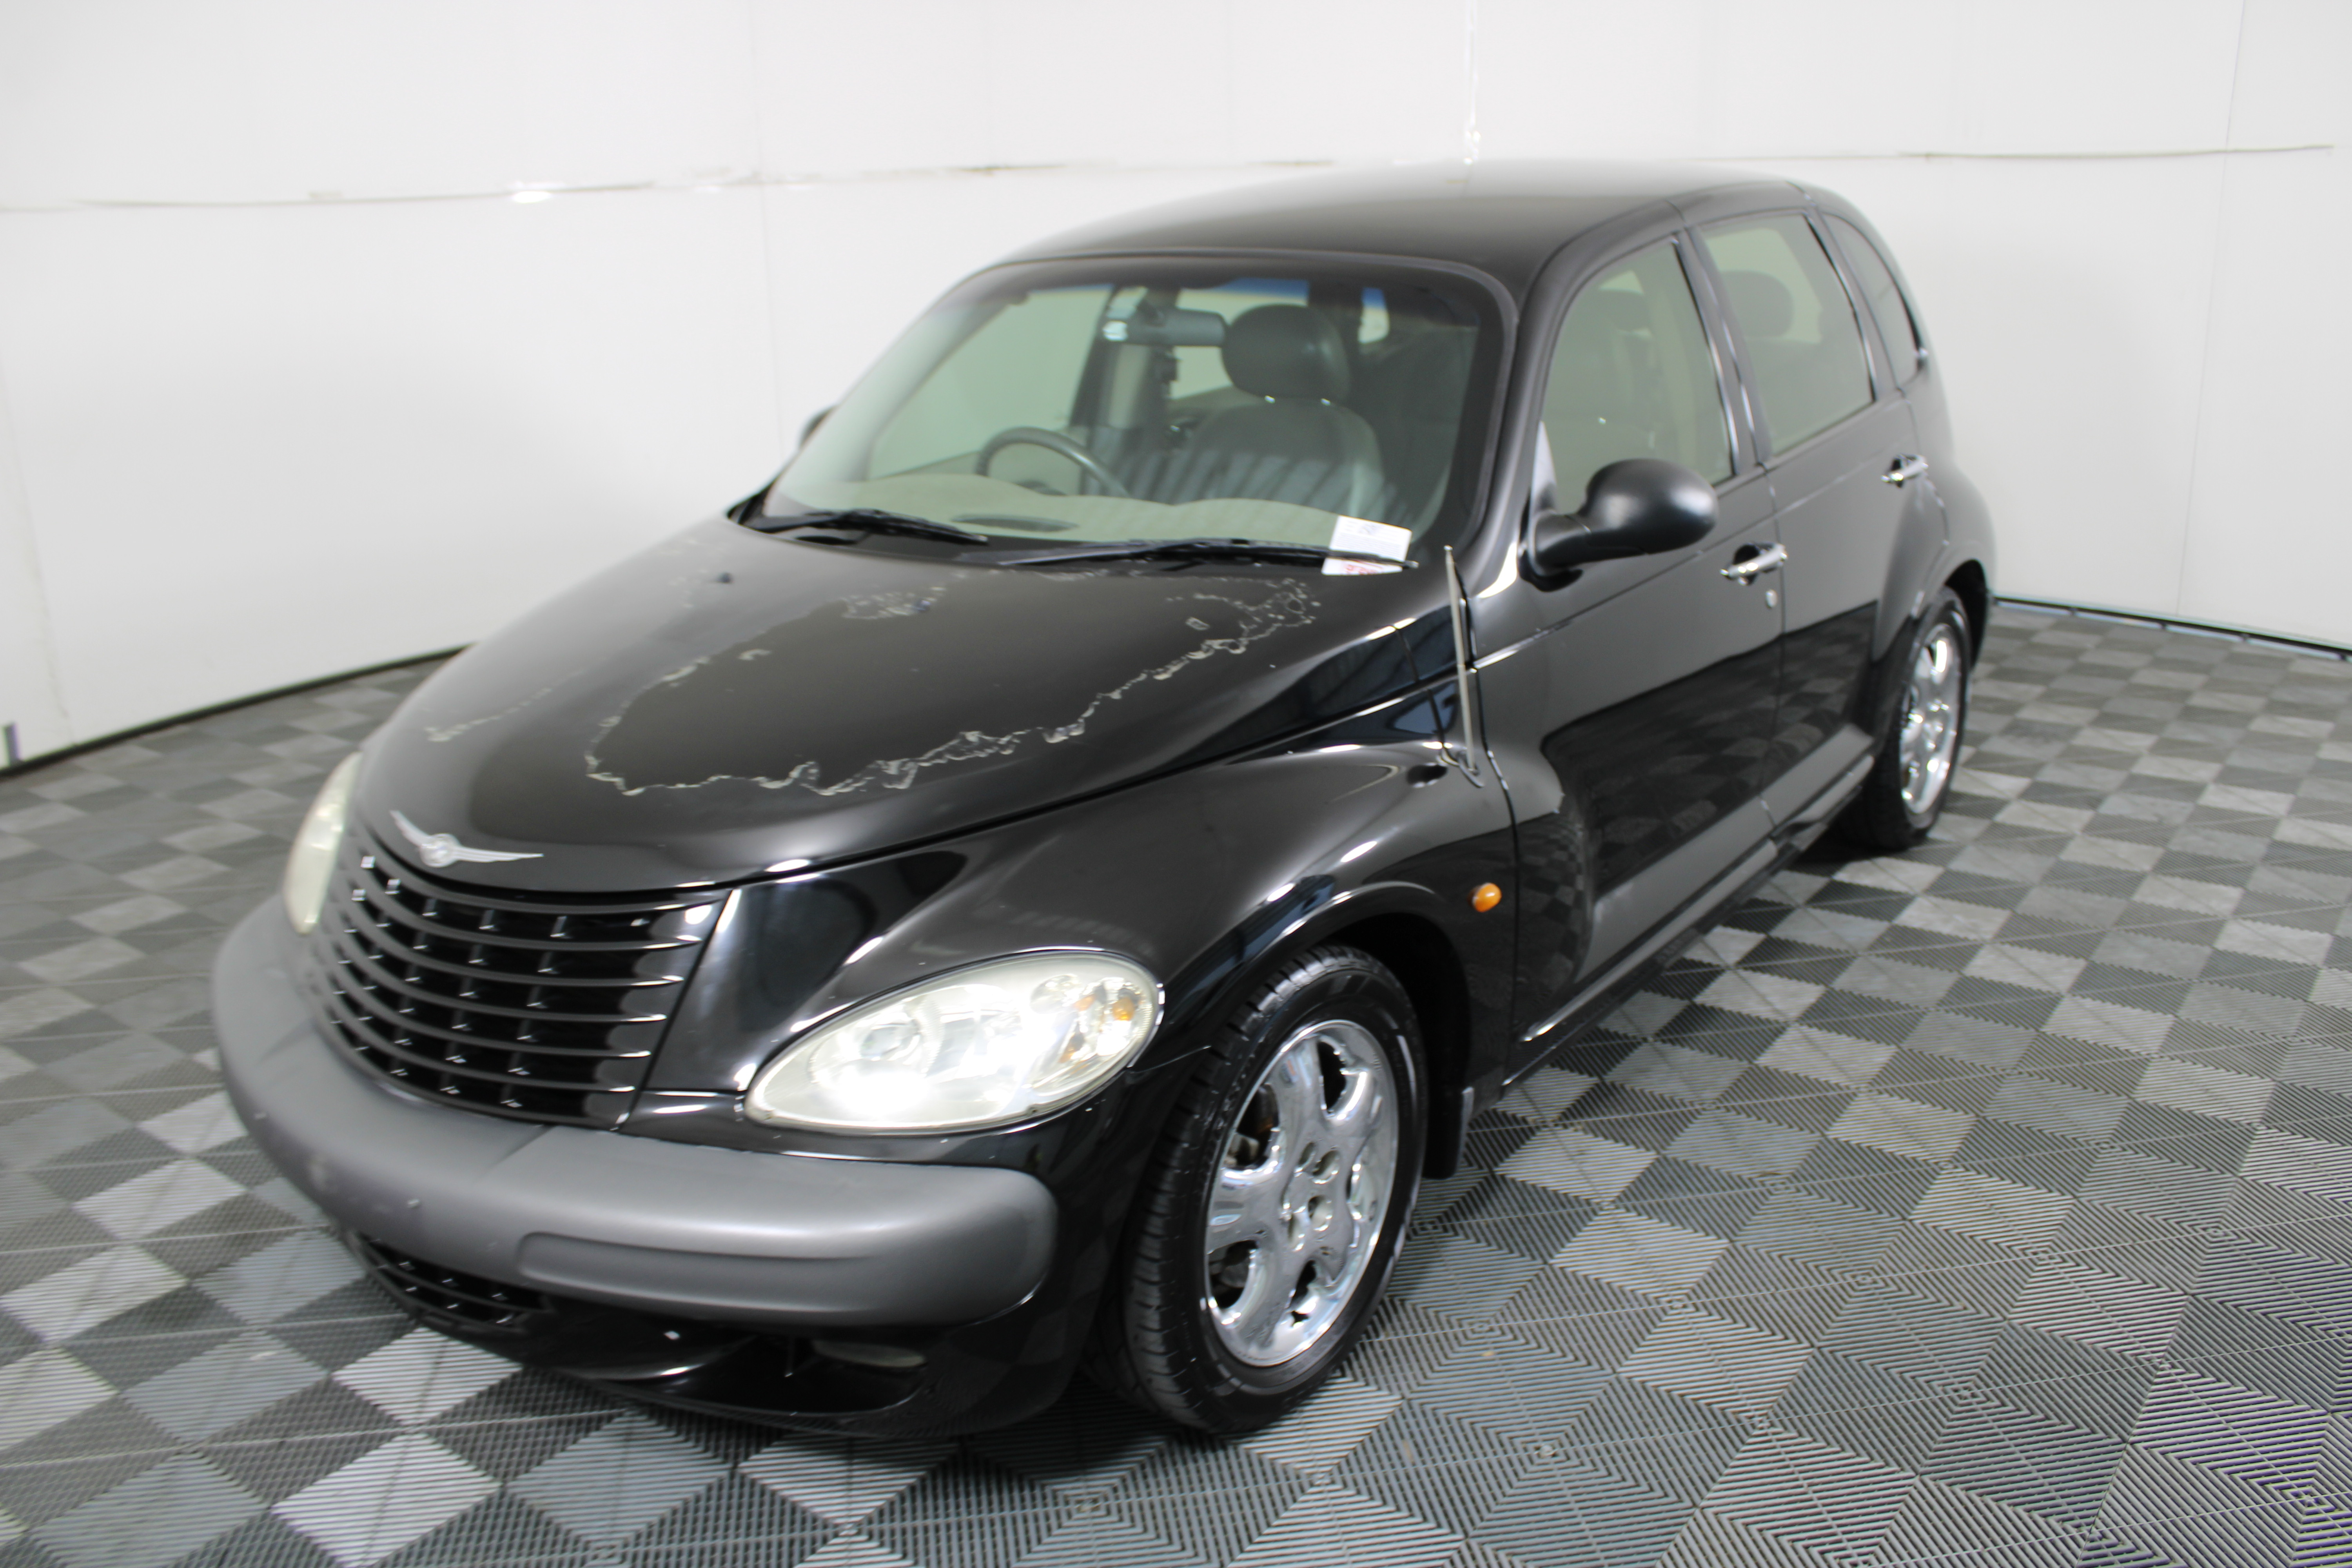 2001 (2002) Chrysler PT Cruiser Limited Automatic Wagon